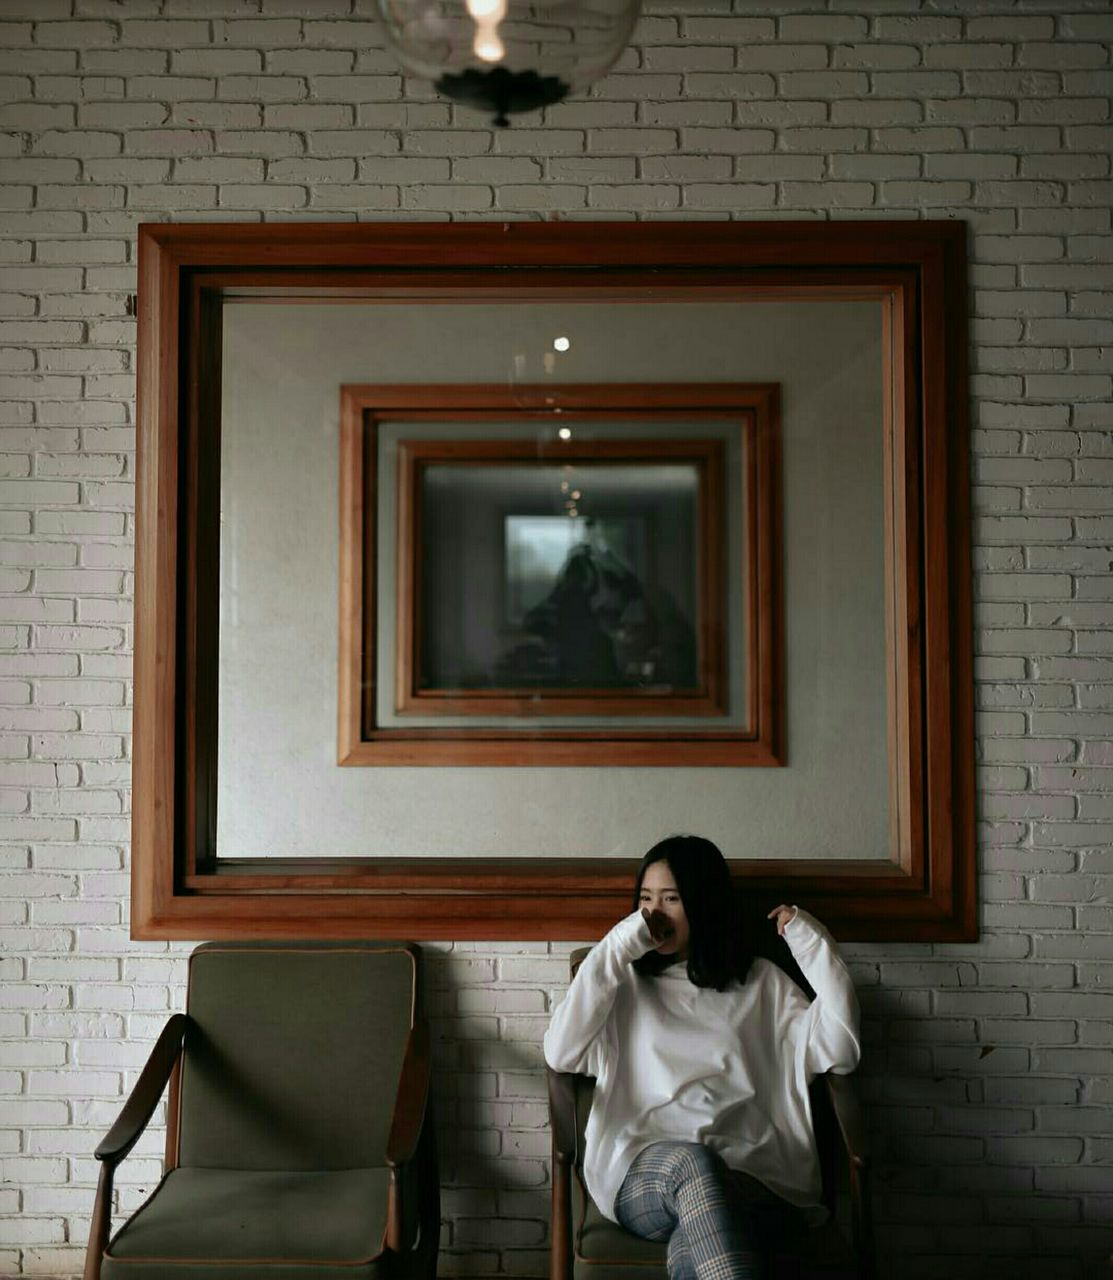 Woman Sitting On Chair Against Picture Frame